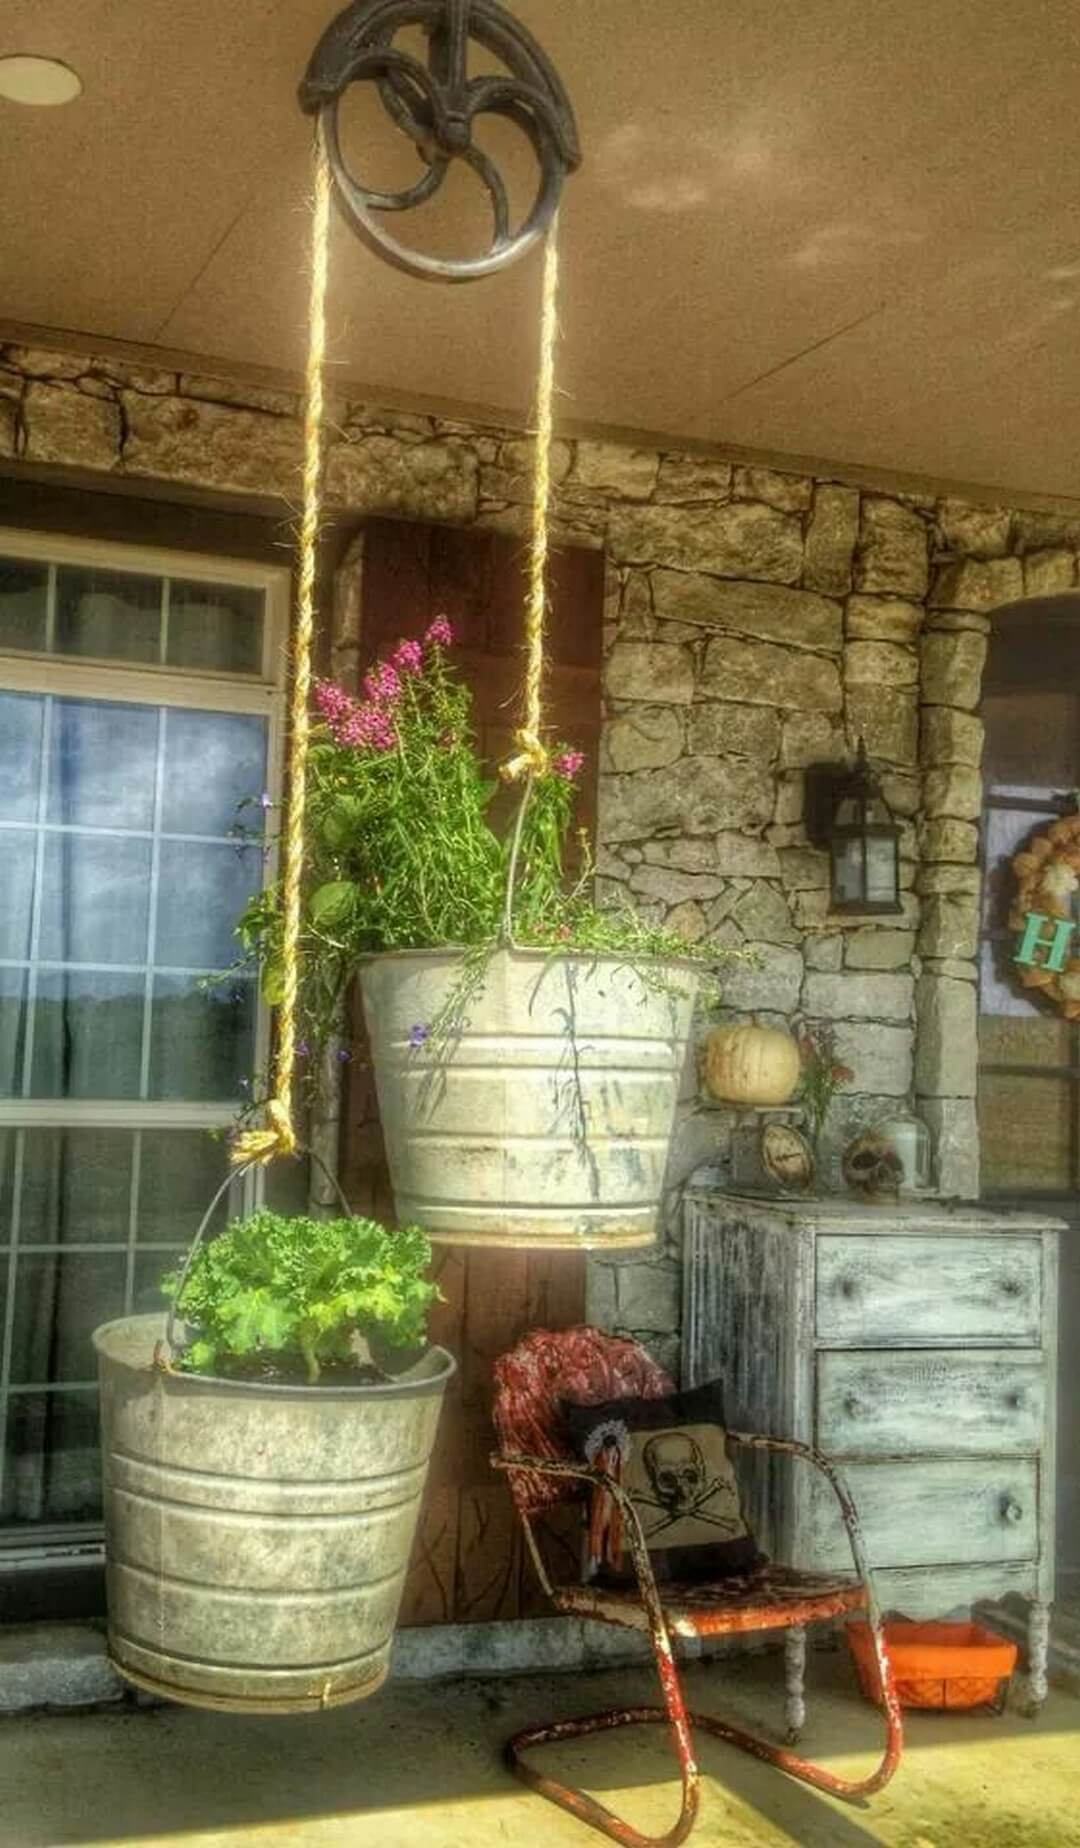 27 Adorable Reused And Repurposed Galvanized Tub And Bucket Ideas To Bring Country Into Your Home Rina Watt Blogger Home Decor Diy And Recipes